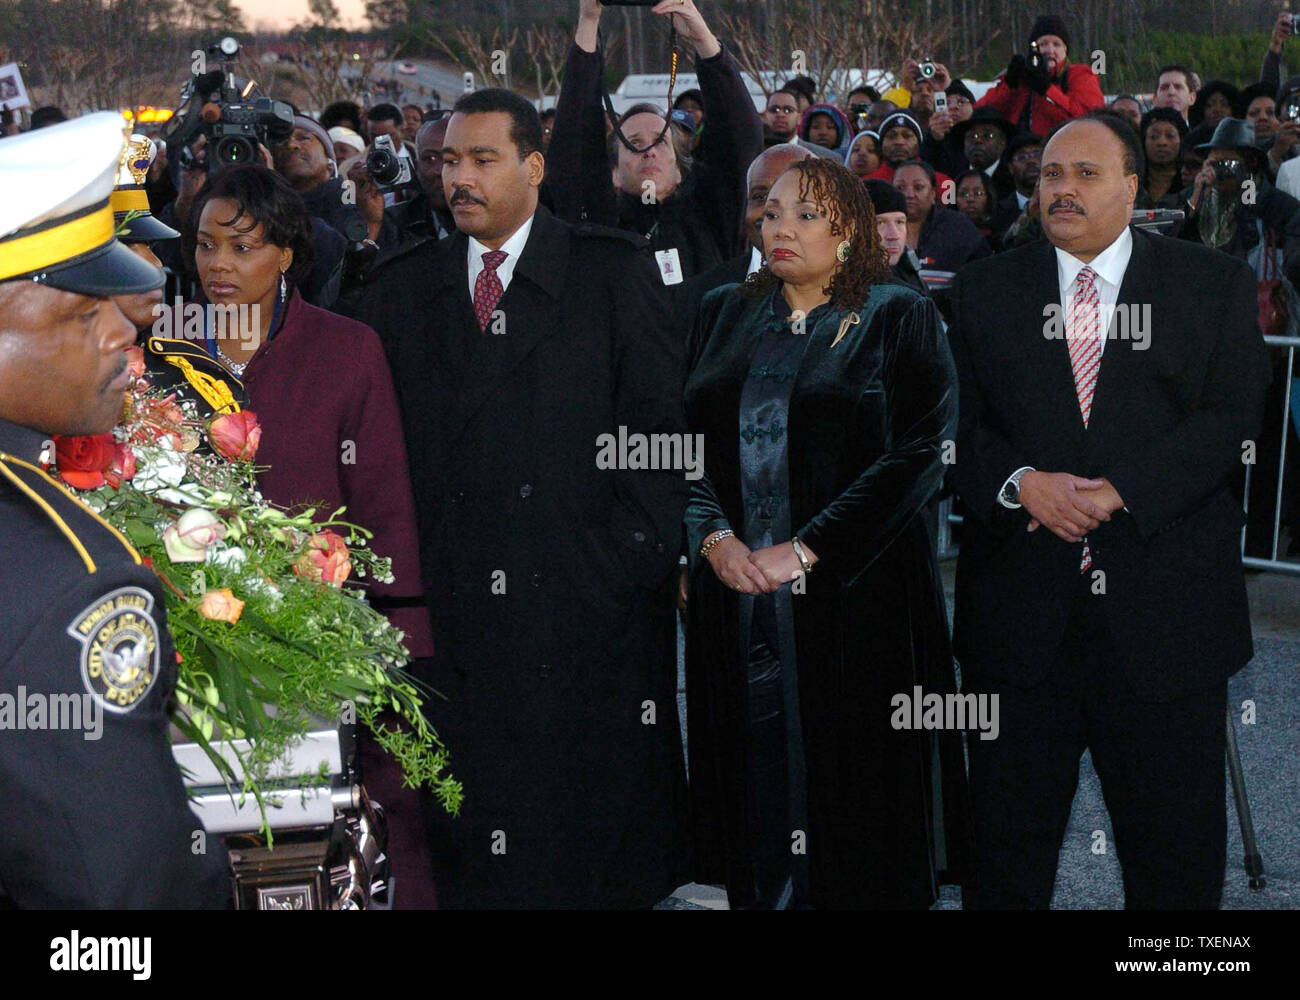 The children of Coretta Scott King, (L-R) Rev. Bernice King, Dexter King, Yolanda King and Martin Luther King III watch as their mother's casket is carried from the New Birth Missionary Baptist Church in Lithonia, Ga., after her funeral service February 7, 2006. Coretta Scott King was the wife of Dr. Martin Luther King Jr.  (UPI Photo/Byron Small) Stock Photo